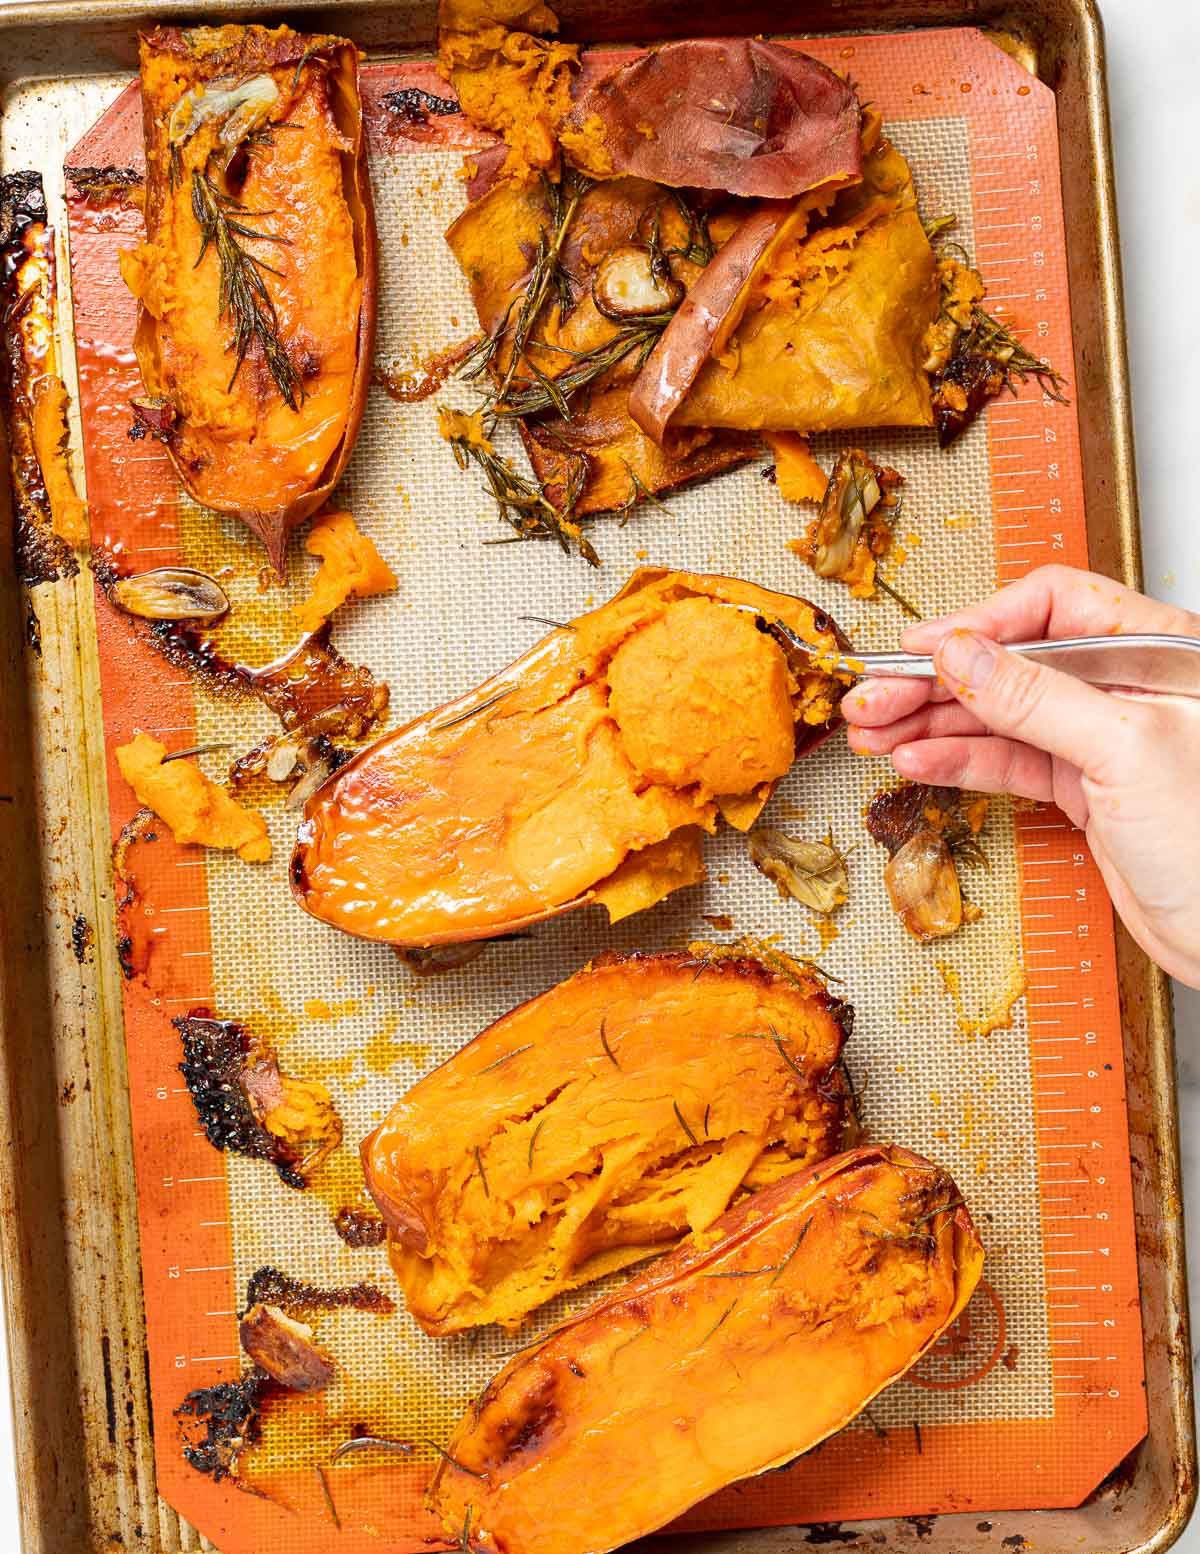 roasted sweet potatoes with garlic and rosemary on a baking tray